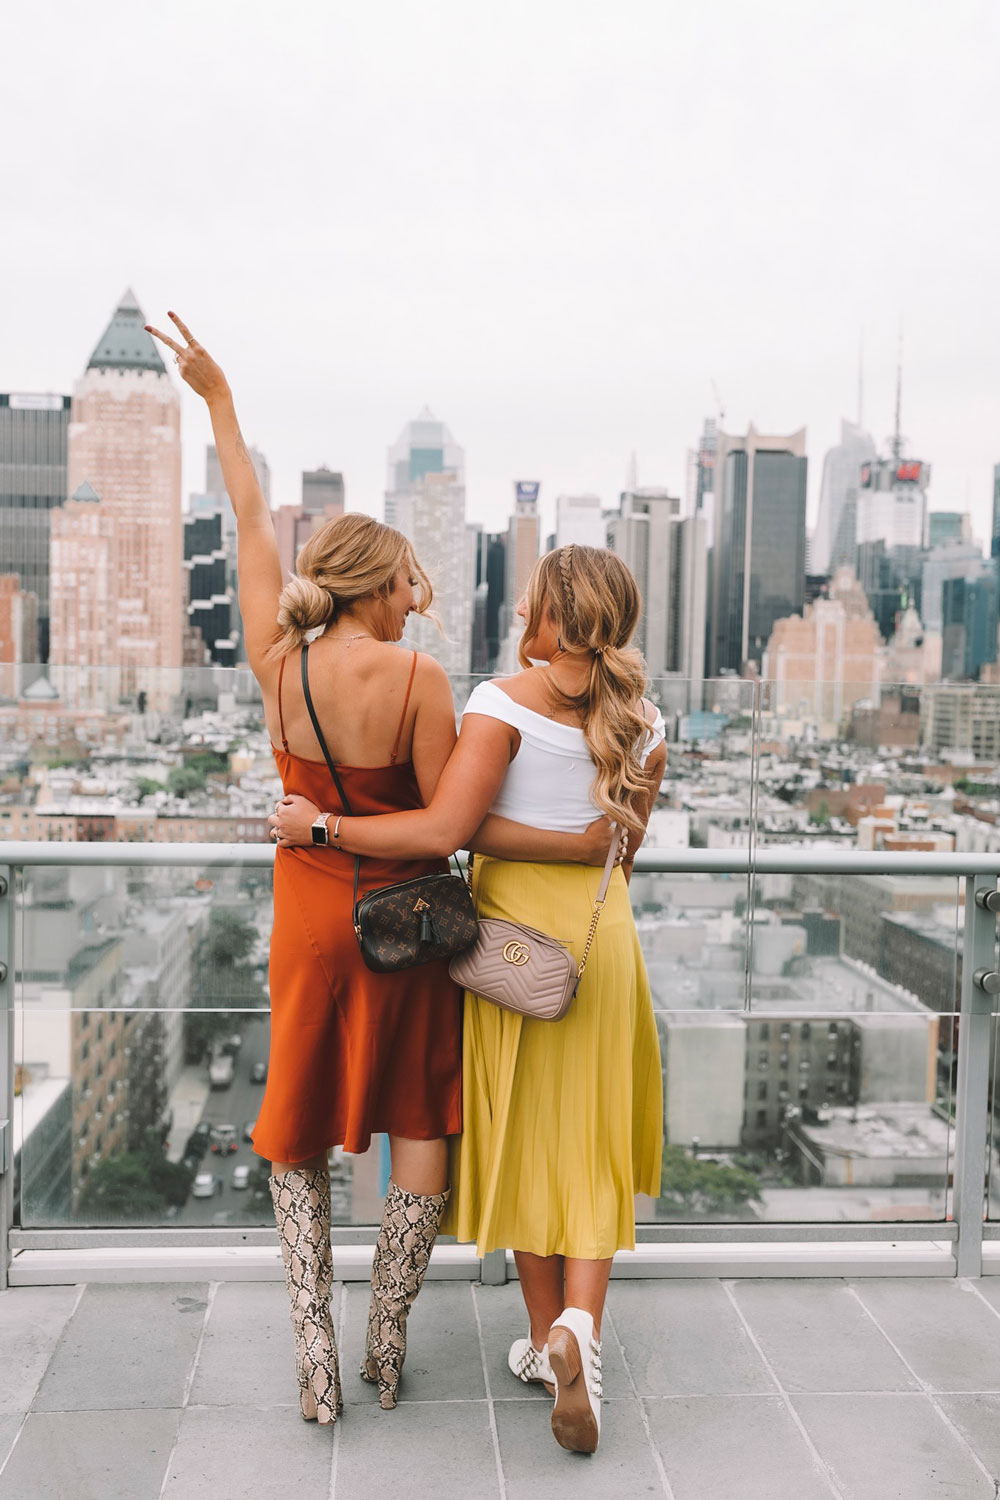 Most Instagrammable Spots in NYC: Rooftop Bars